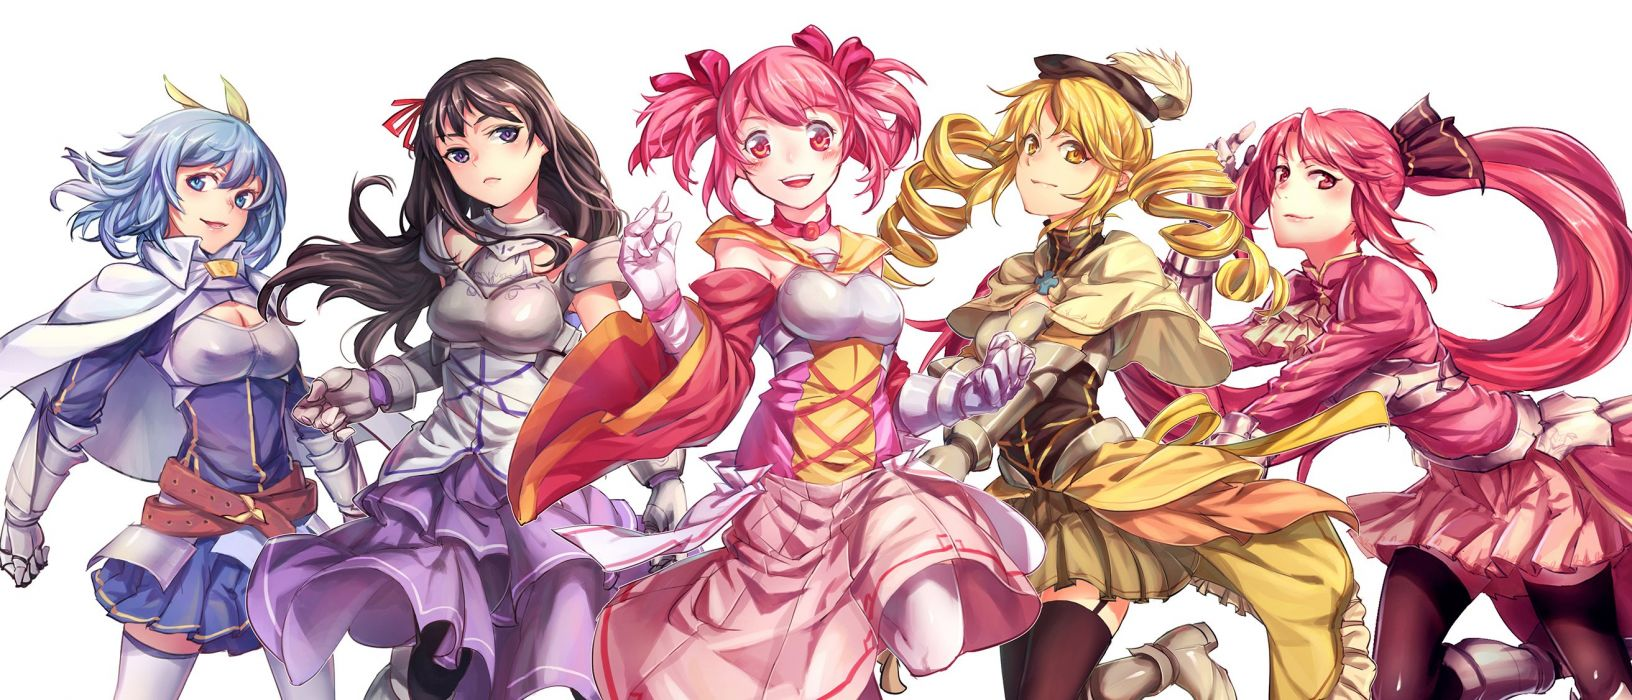 blue eyes blue hair boots cape choker gloves group hat headband long hair pink hair ponytail red eyes red hair skirt thighhighs tomoe mami twintails wallpaper